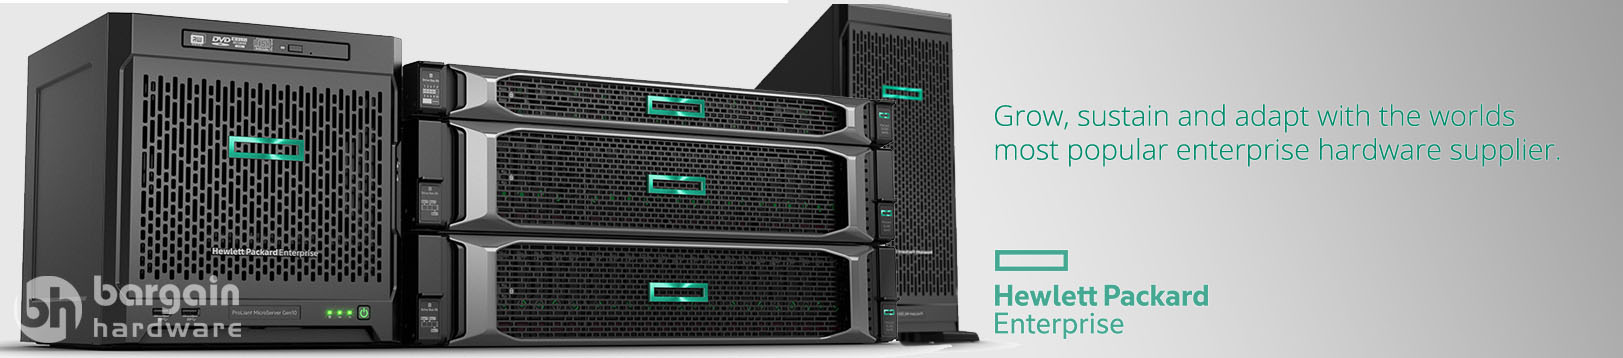 HPE Helping Businesses Grow